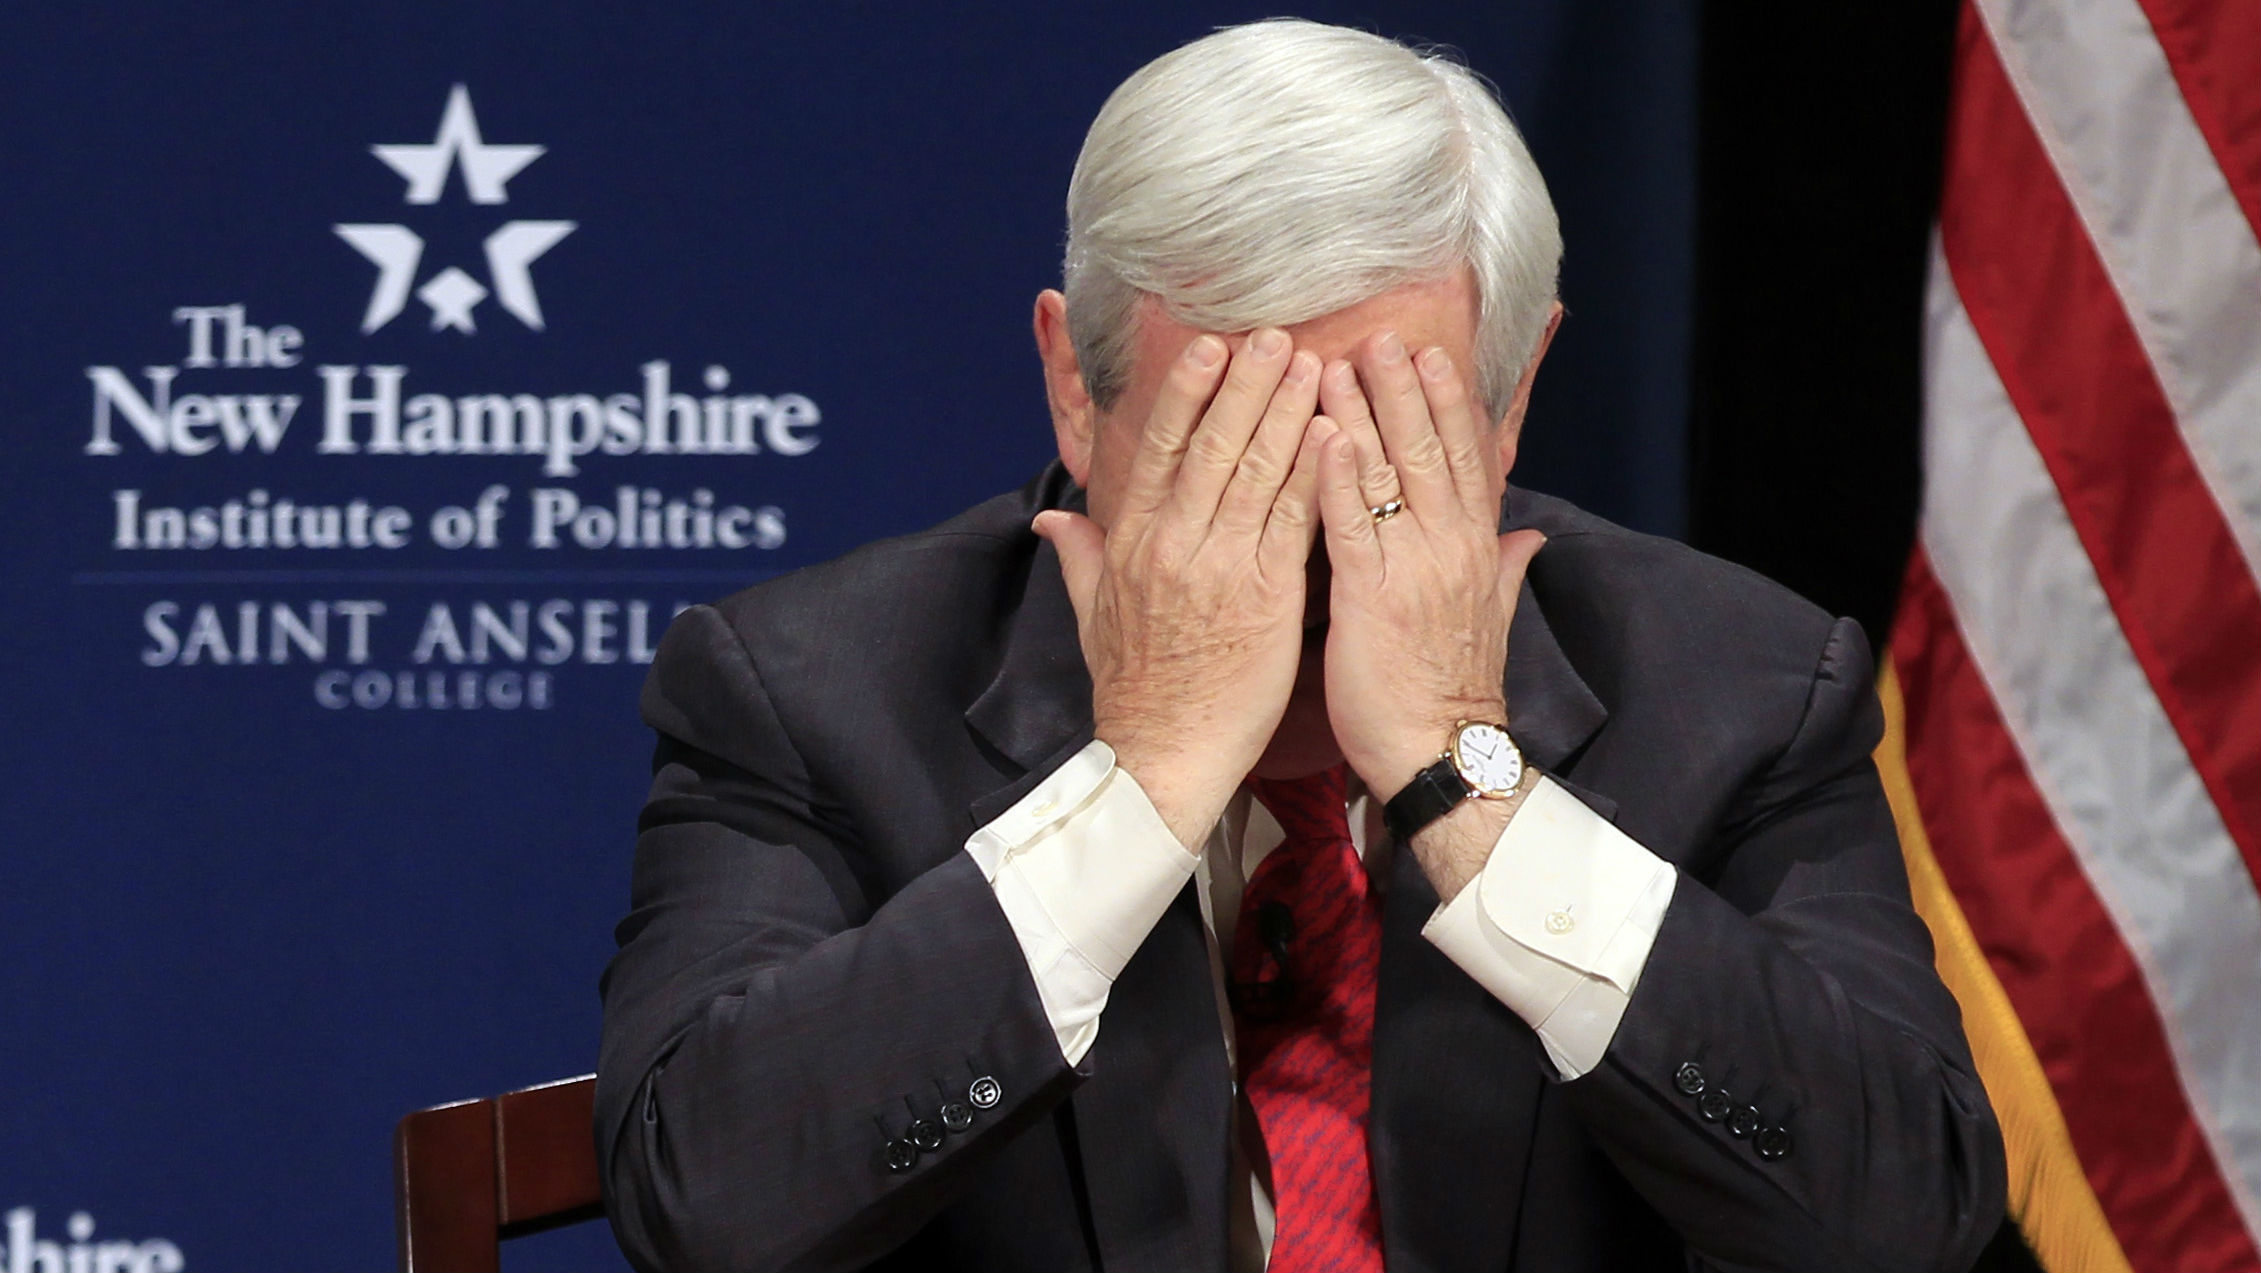 U.S. Republican presidential candidate former U.S. House Speaker Newt Gingrich covers his face with his hands during his Lincoln-Douglas style debate with fellow candidate and former Utah Governor Jon Huntsman at St. Anselm College in Manchester, New Hampshire December 12, 2011.